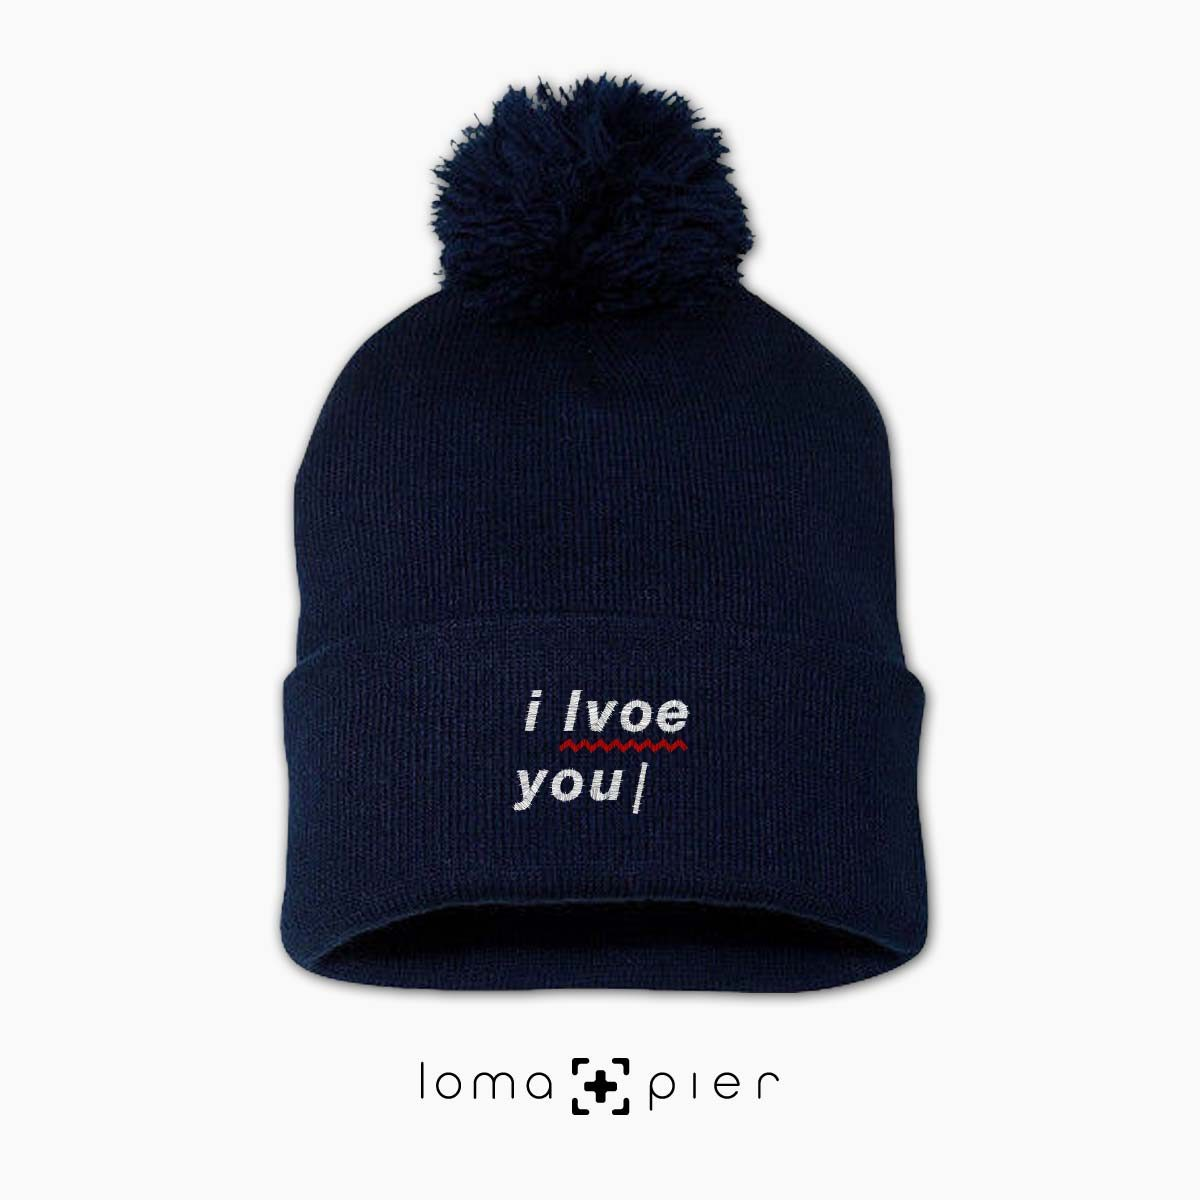 I LVOE YOU typography embroidered on a navy blue pom pom beanie with white thread by loma+pier hat store